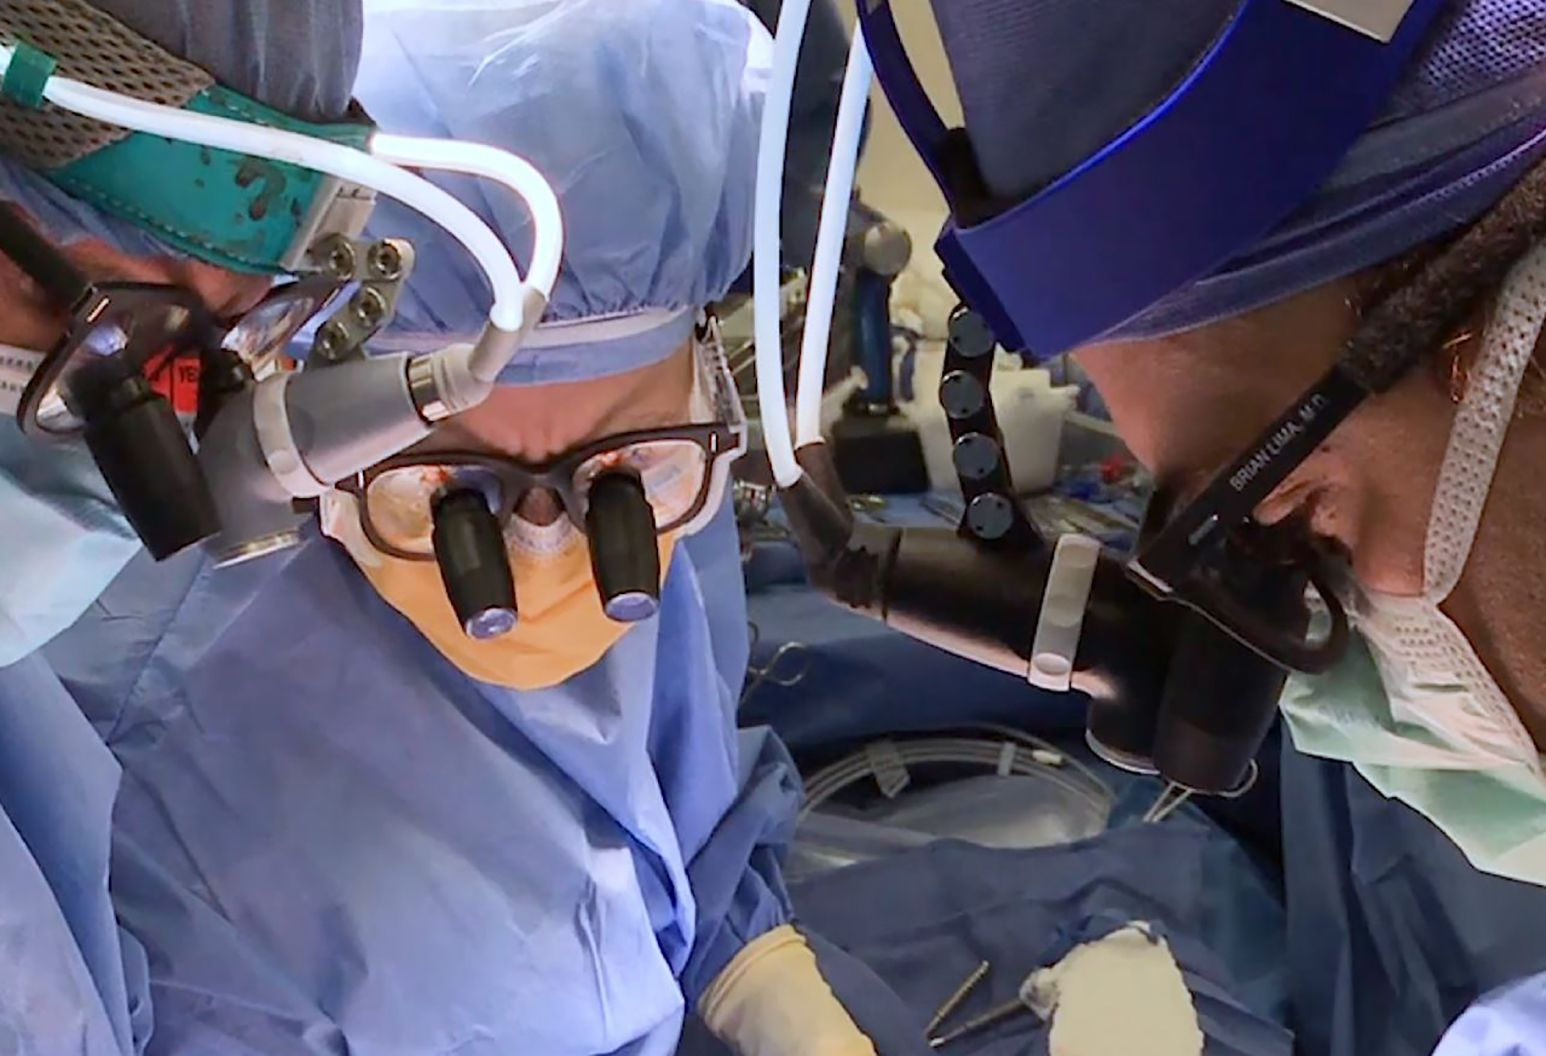 Brian Lima, MD, and his colleagues perform Long Island's first heart transplant in February 2018.